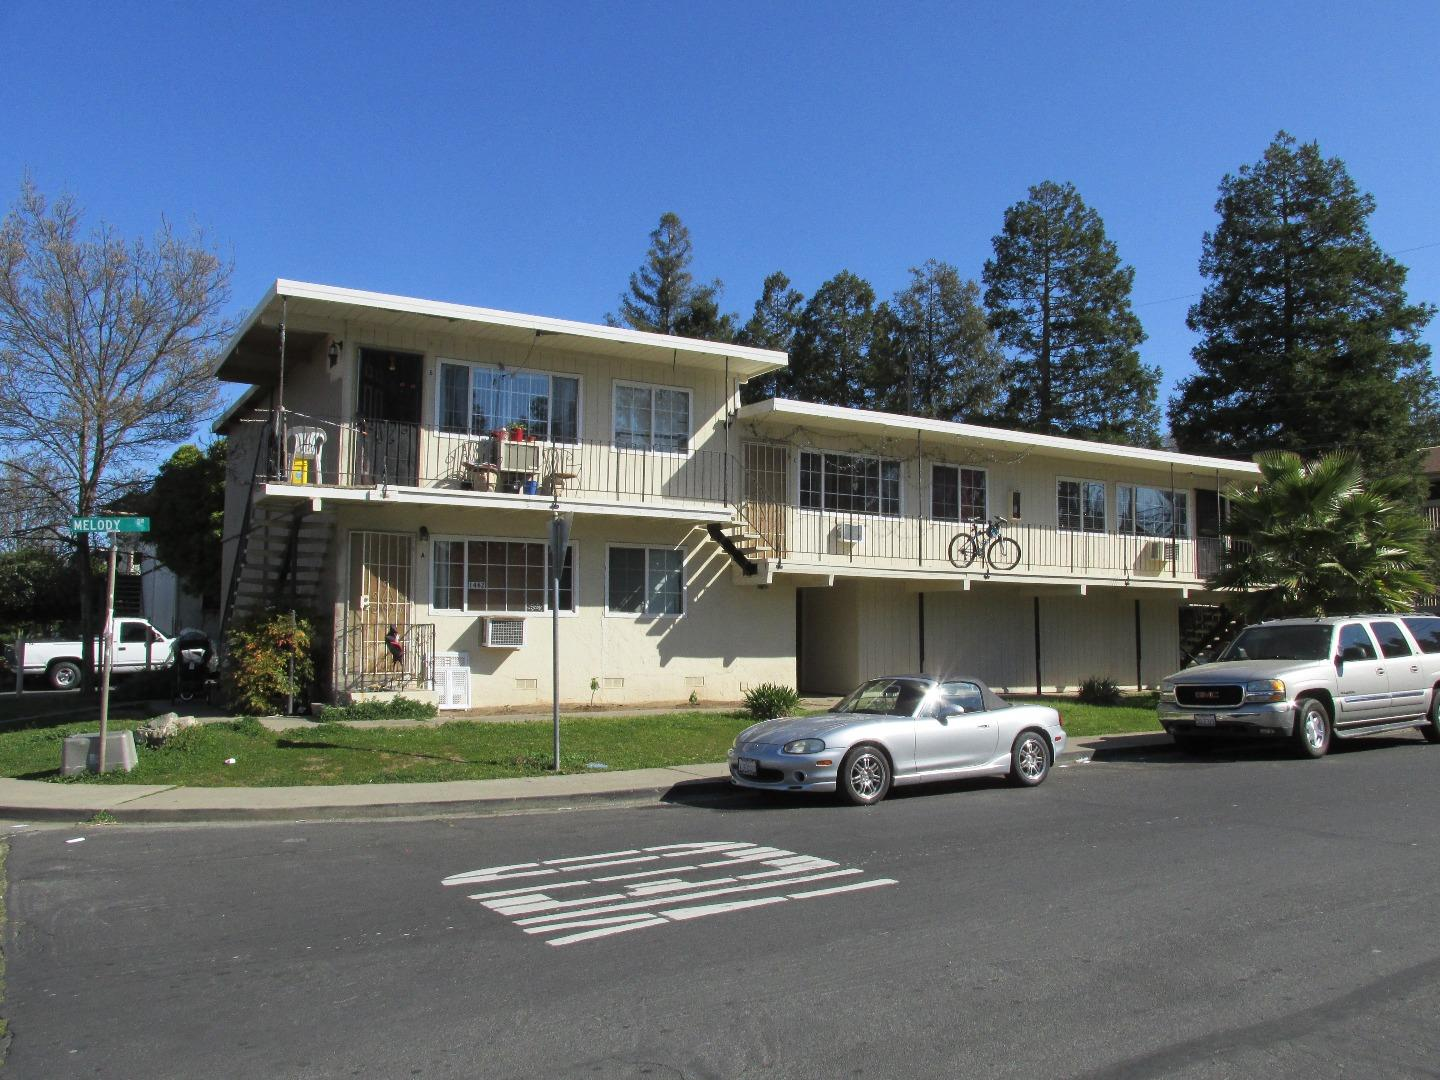 Multi-Family Home for Sale at 1462 Marclair Drive 1462 Marclair Drive Concord, California 94521 United States